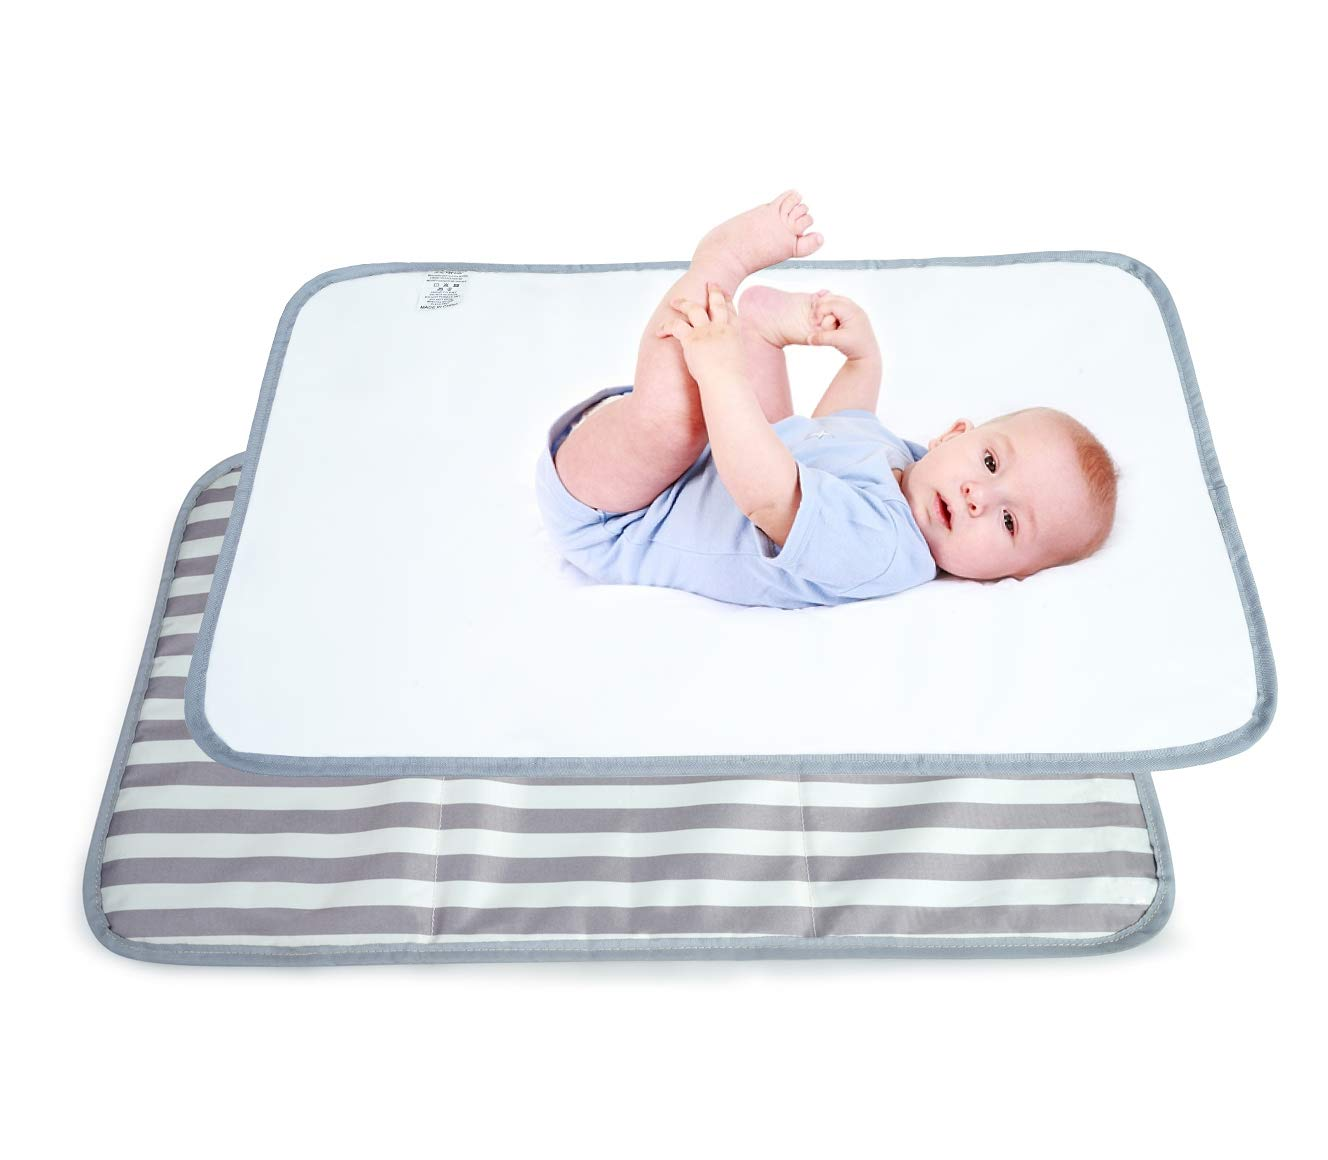 QIMIAOBABY Waterproof Max 88% OFF pad Portable Easy-to-use Travel Changing Diaper mat